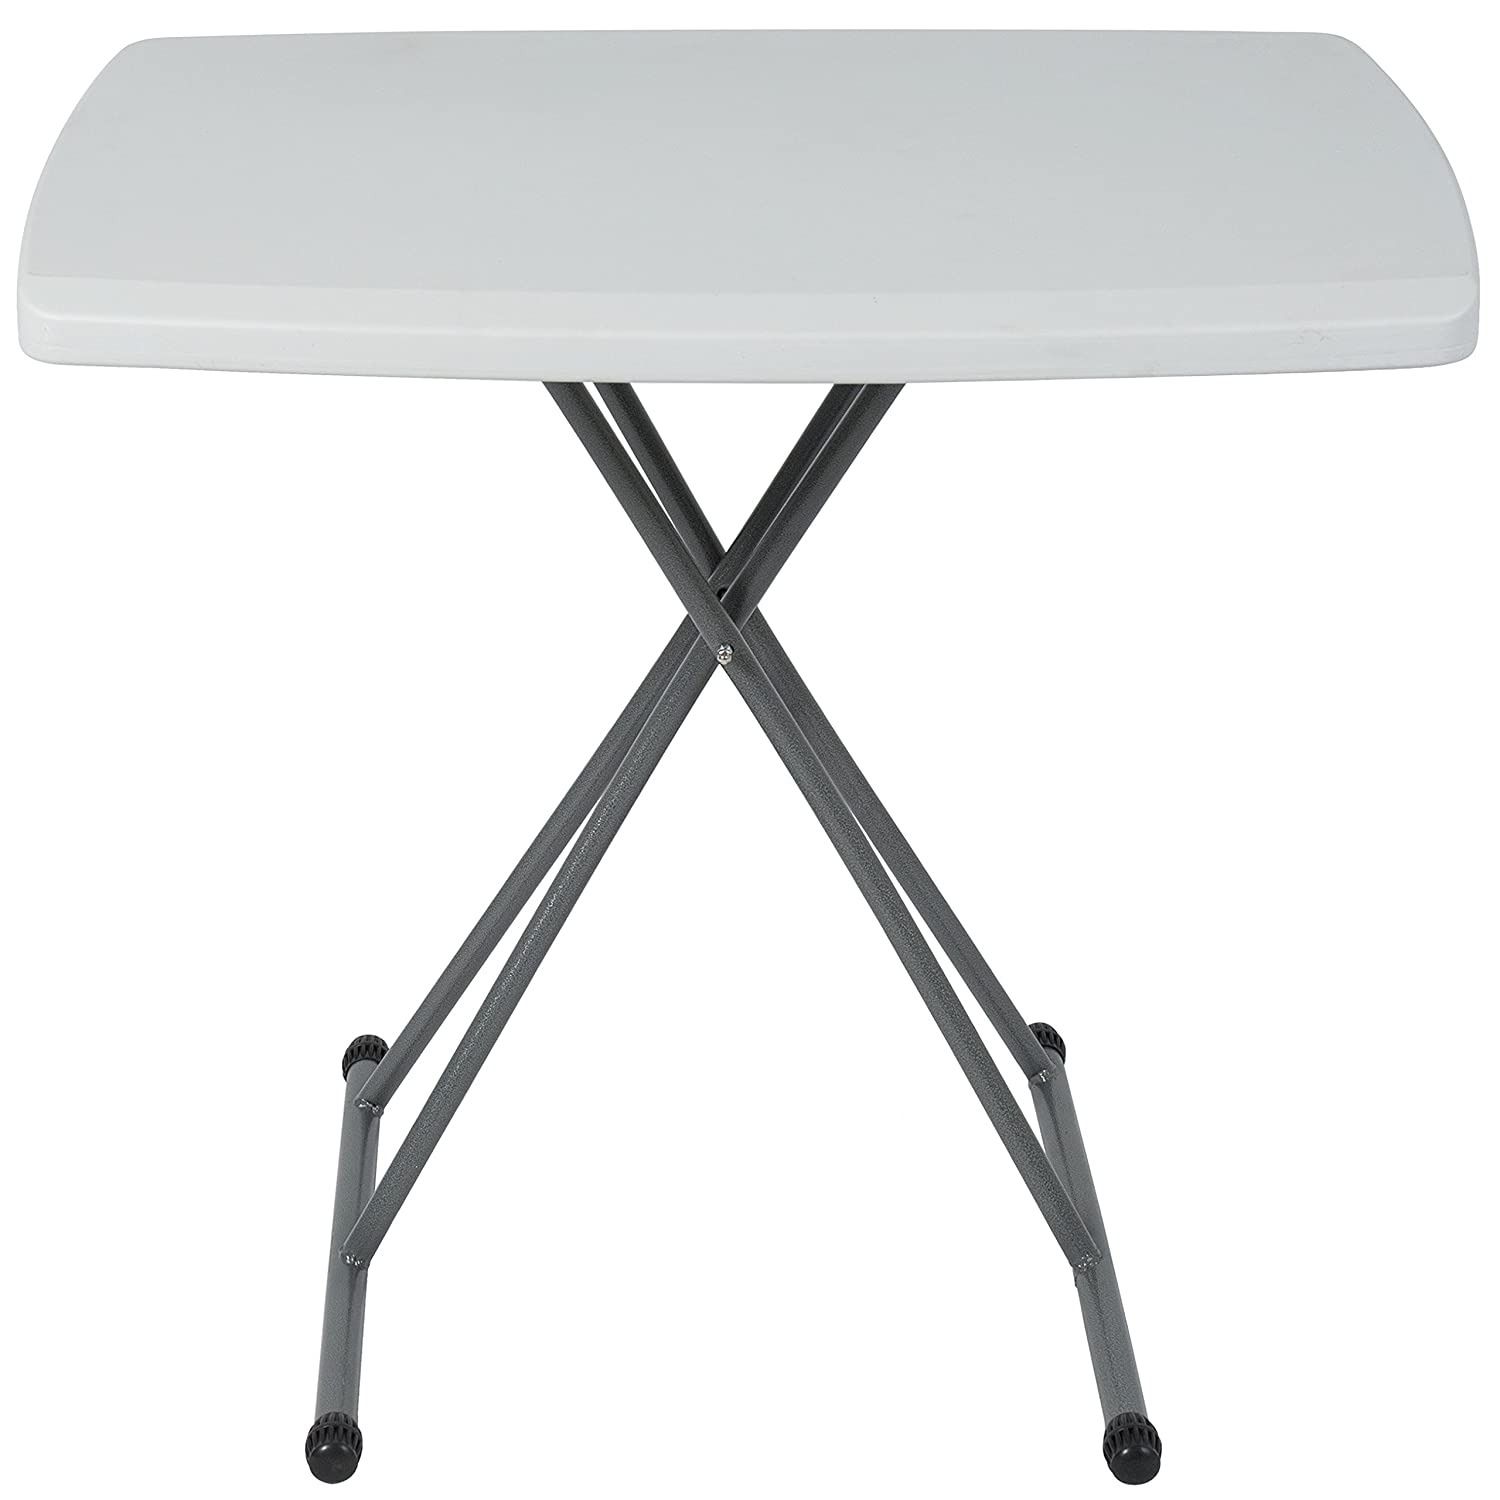 BCP Portable Personal Folding Table High Adjustable Indoor Outdoor 30 x 20